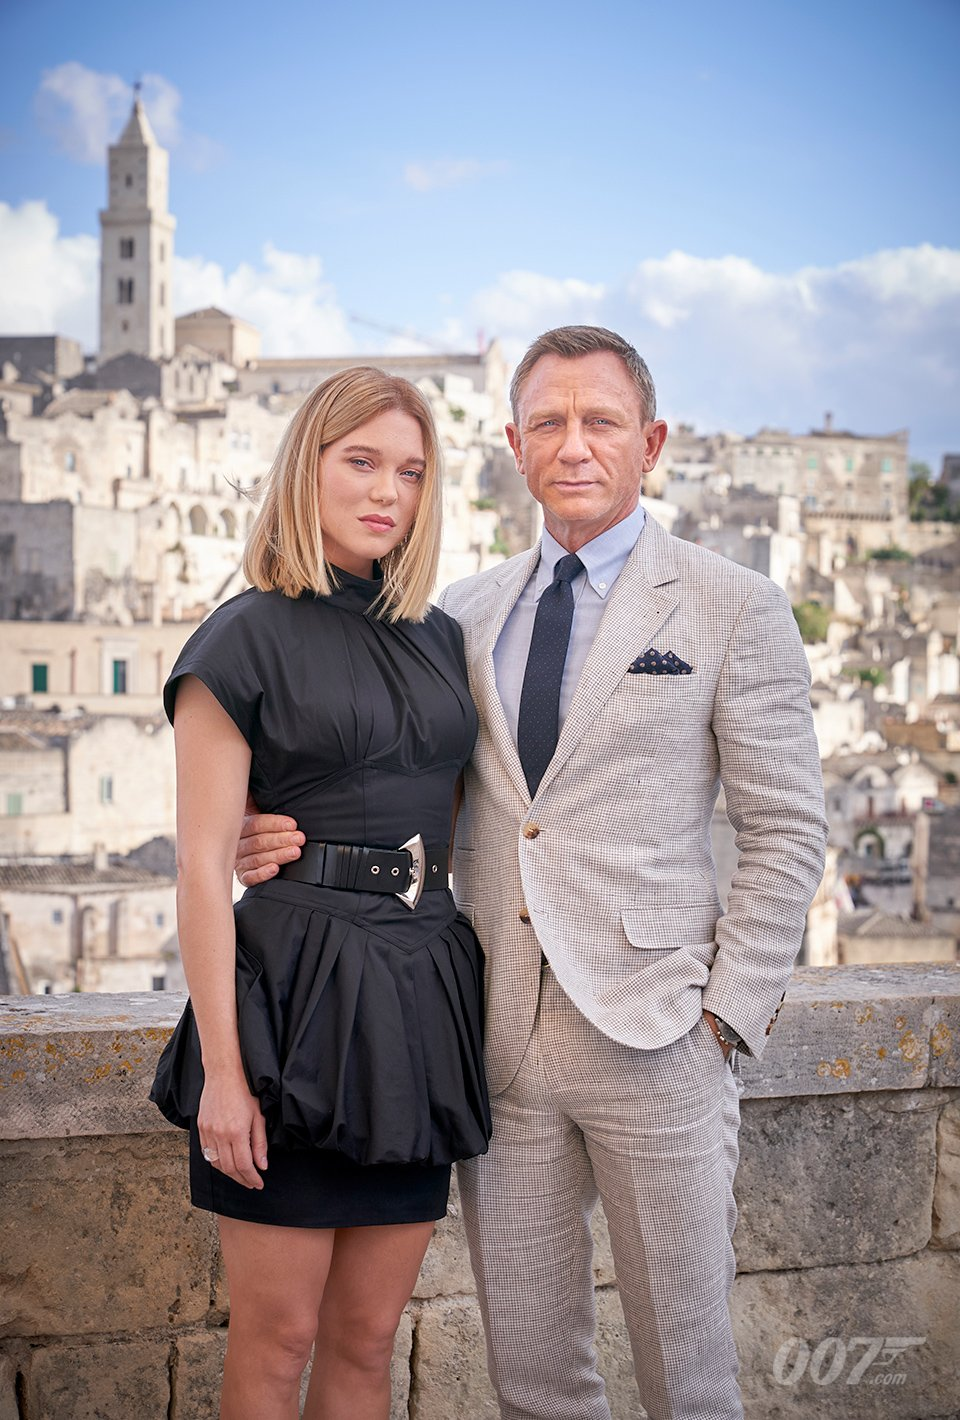 Bond S Back In First No Time To Die Teaser Trailer